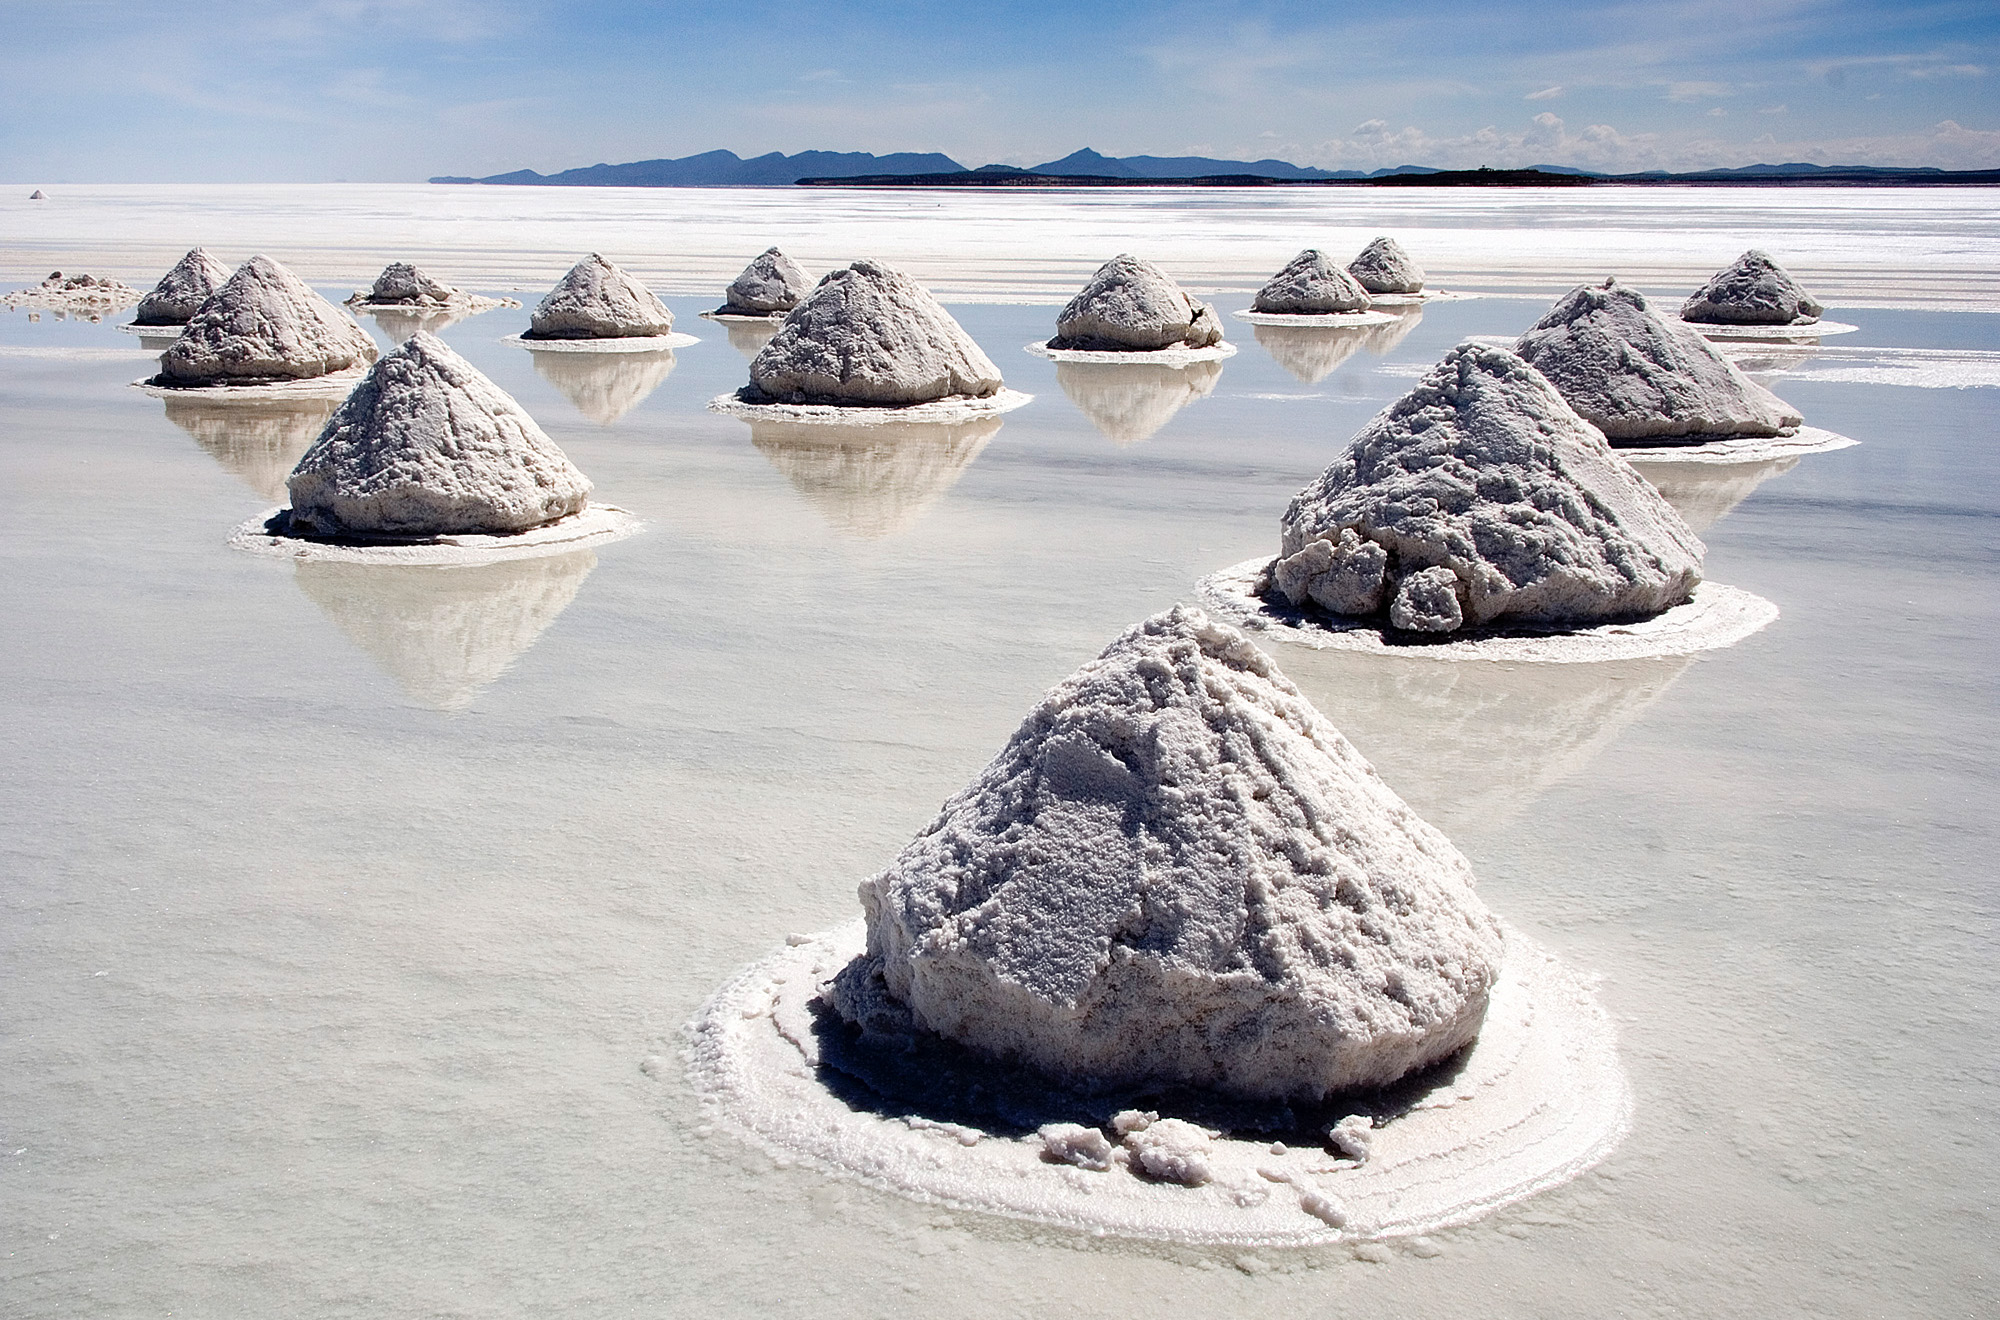 https://d3n8a8pro7vhmx.cloudfront.net/religioussocialism/pages/187/attachments/original/1573753793/Piles_of_Salt_Salar_de_Uyuni_Bolivia_Luca_Galuzzi_2006_a.jpg?1573753793